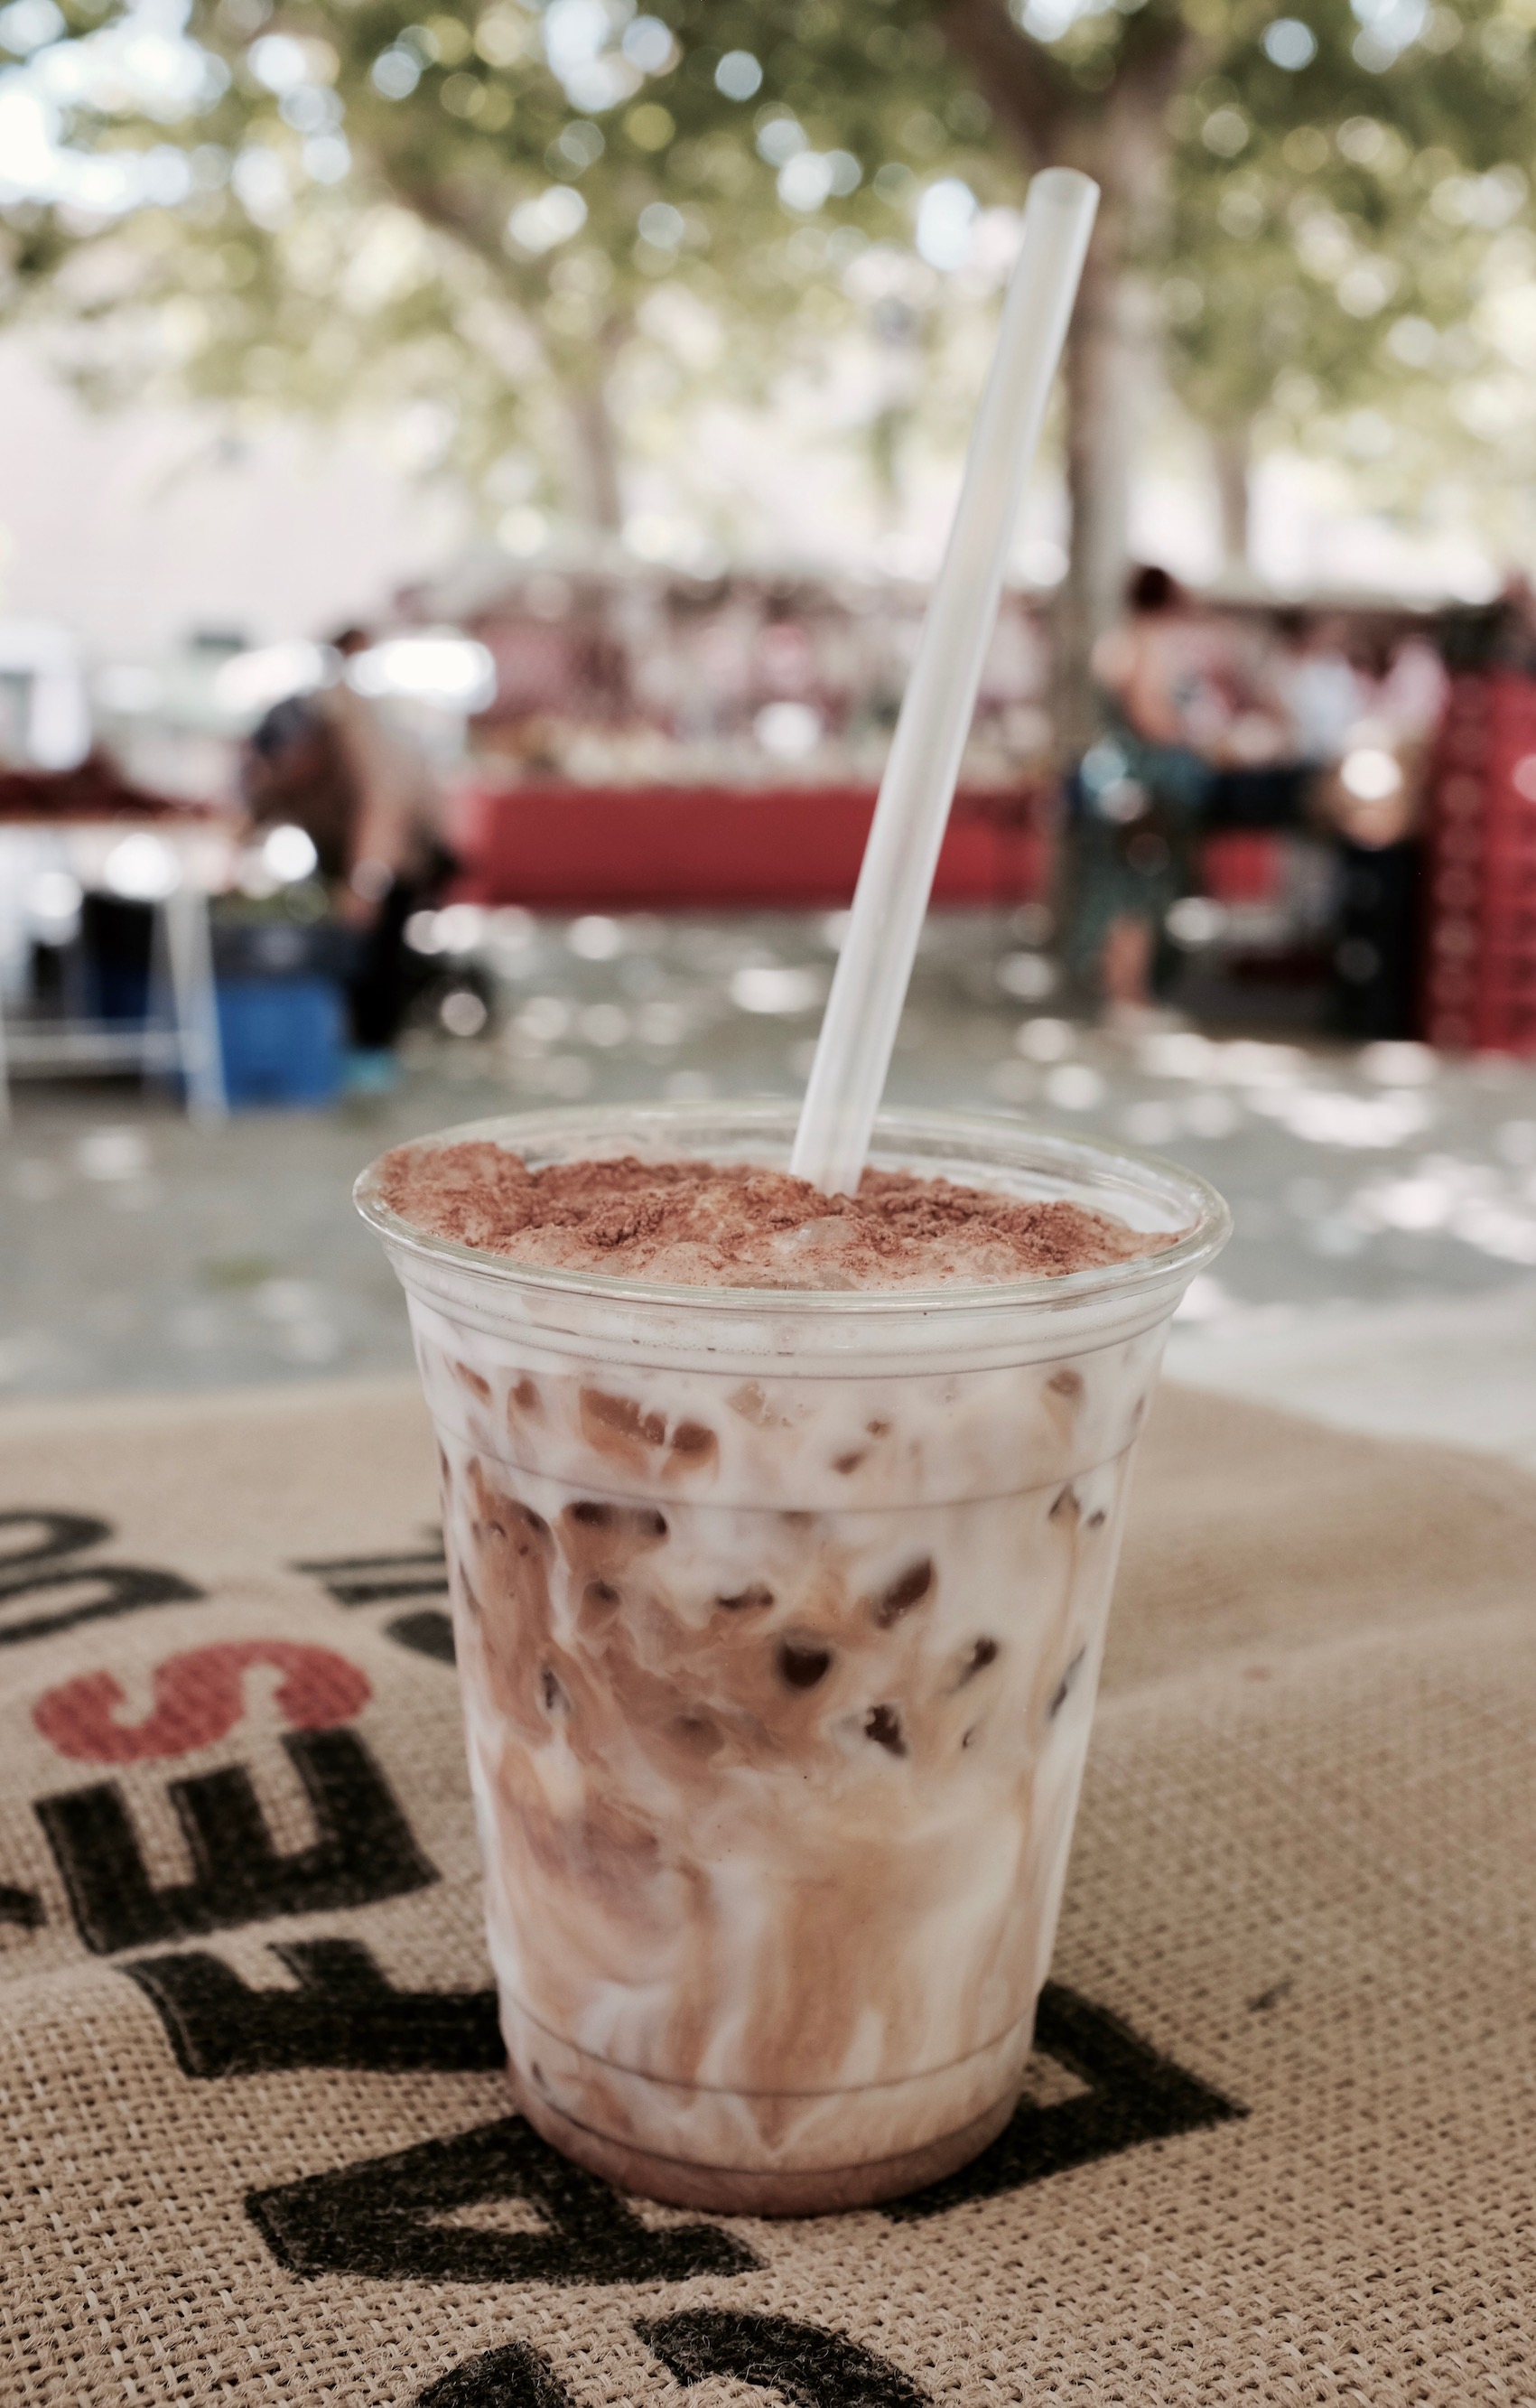 CAFE SOCIAL Mallorca launches its summer' special refreshing coffee drink: The SOCIALCCINO